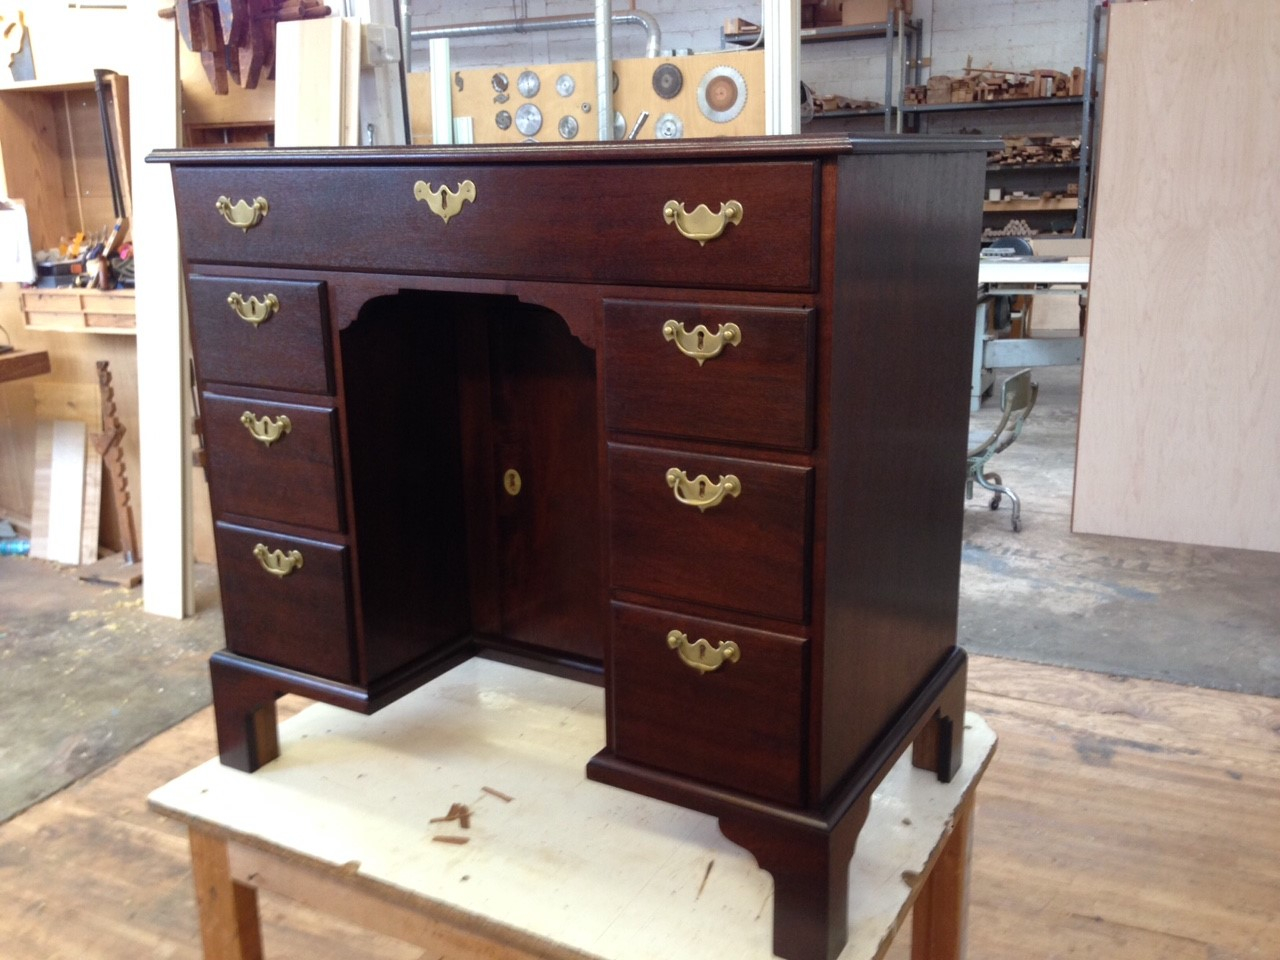 The completed reproduction dressing table. Courtesy of Harrison Higgins, Inc., Richmond, Virginia.